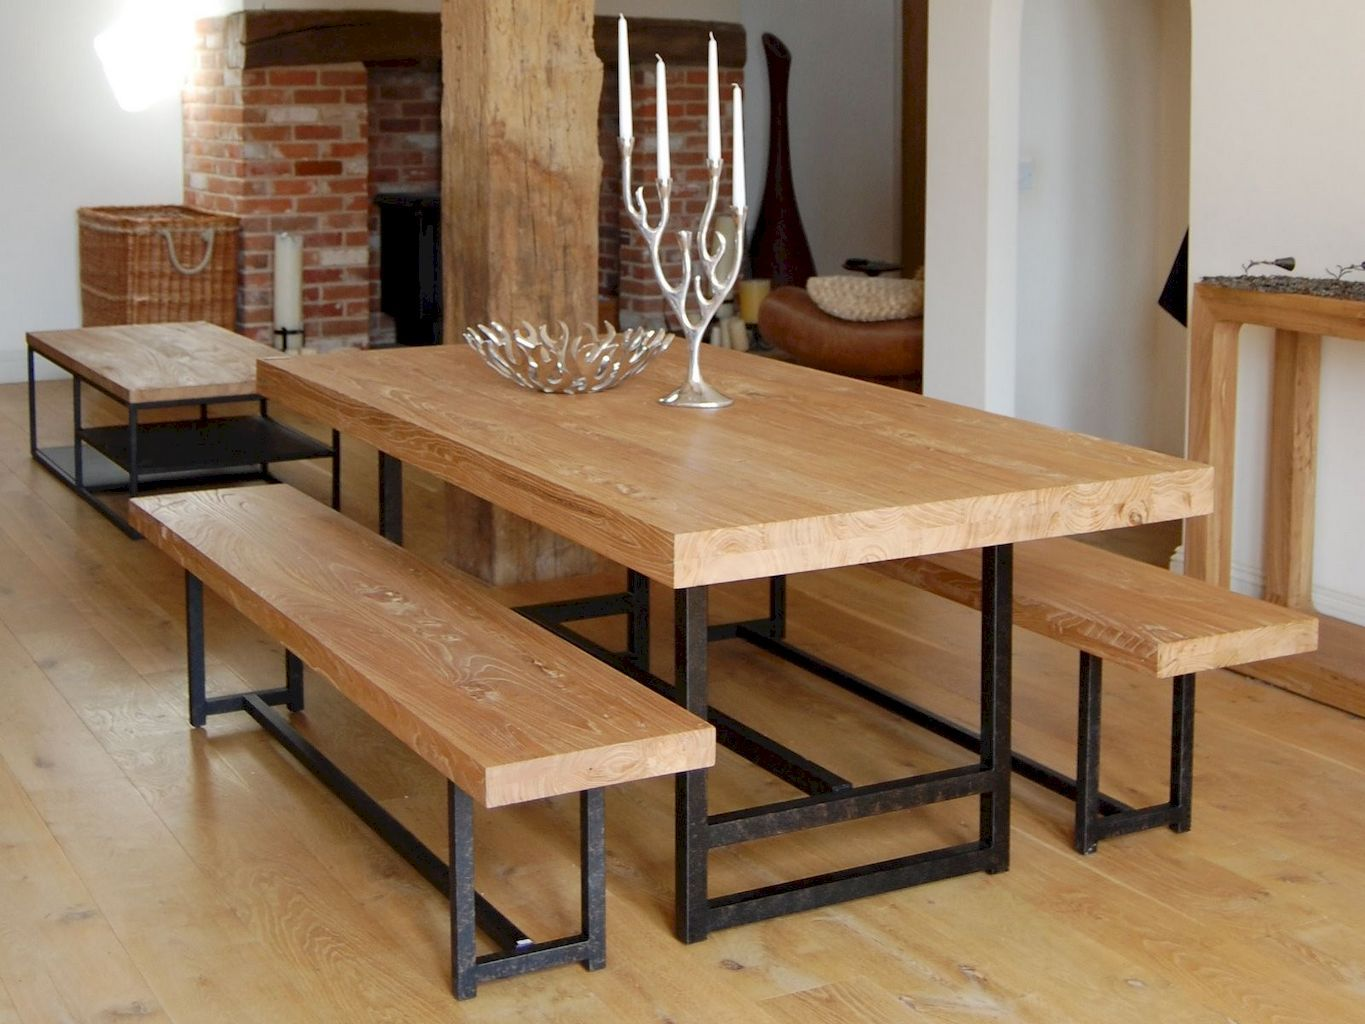 Adorable 55 Modern Diy Wooden Dining Tables Ideas Https Lovelyving Com 2017 09 10 55 Modern Diy Dining Table With Bench Wood Dining Table Rustic Dining Room